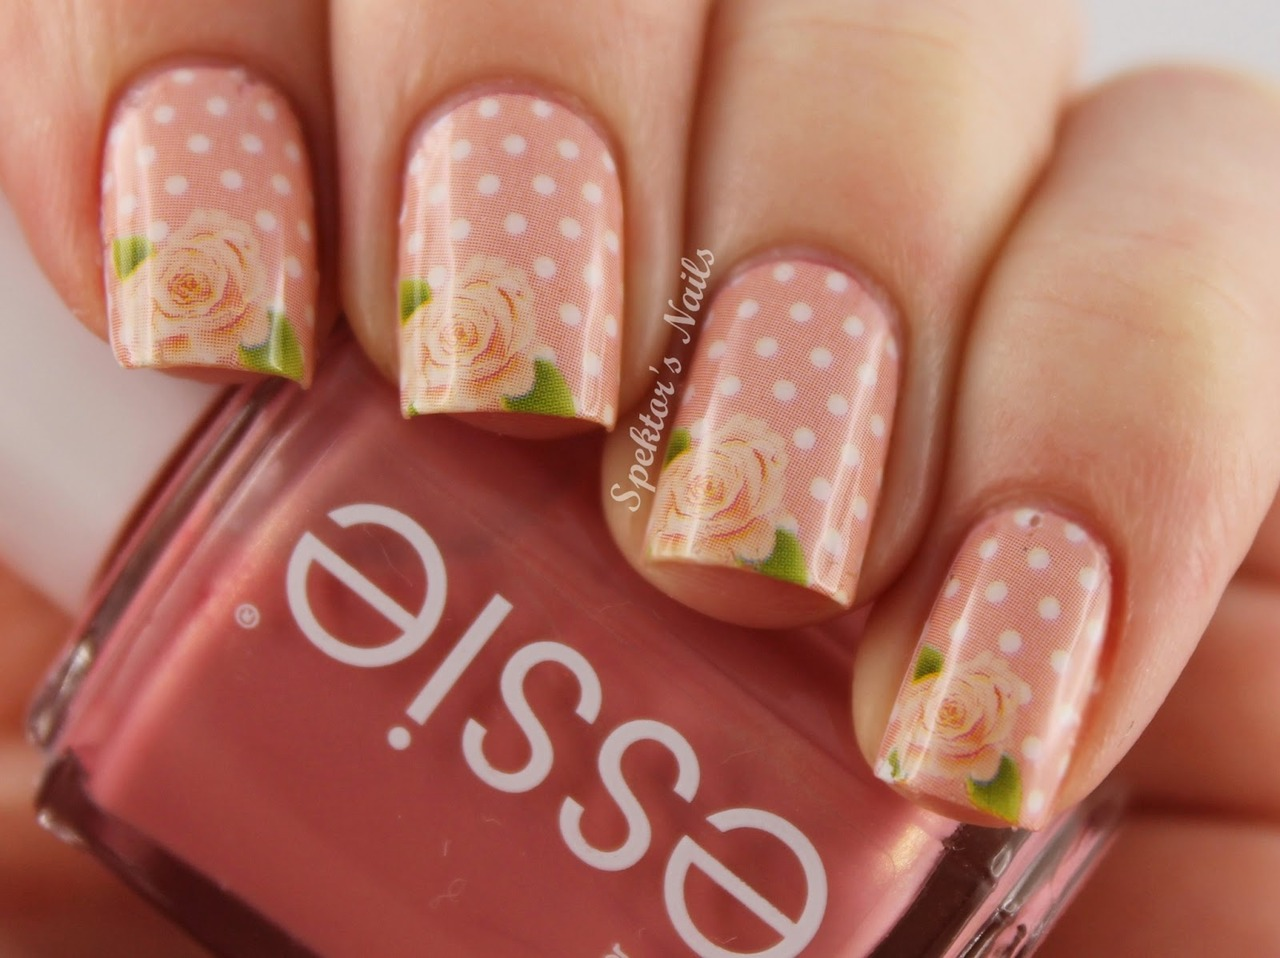 507 Images About A Nails On We Heart It See More About Nails Nail